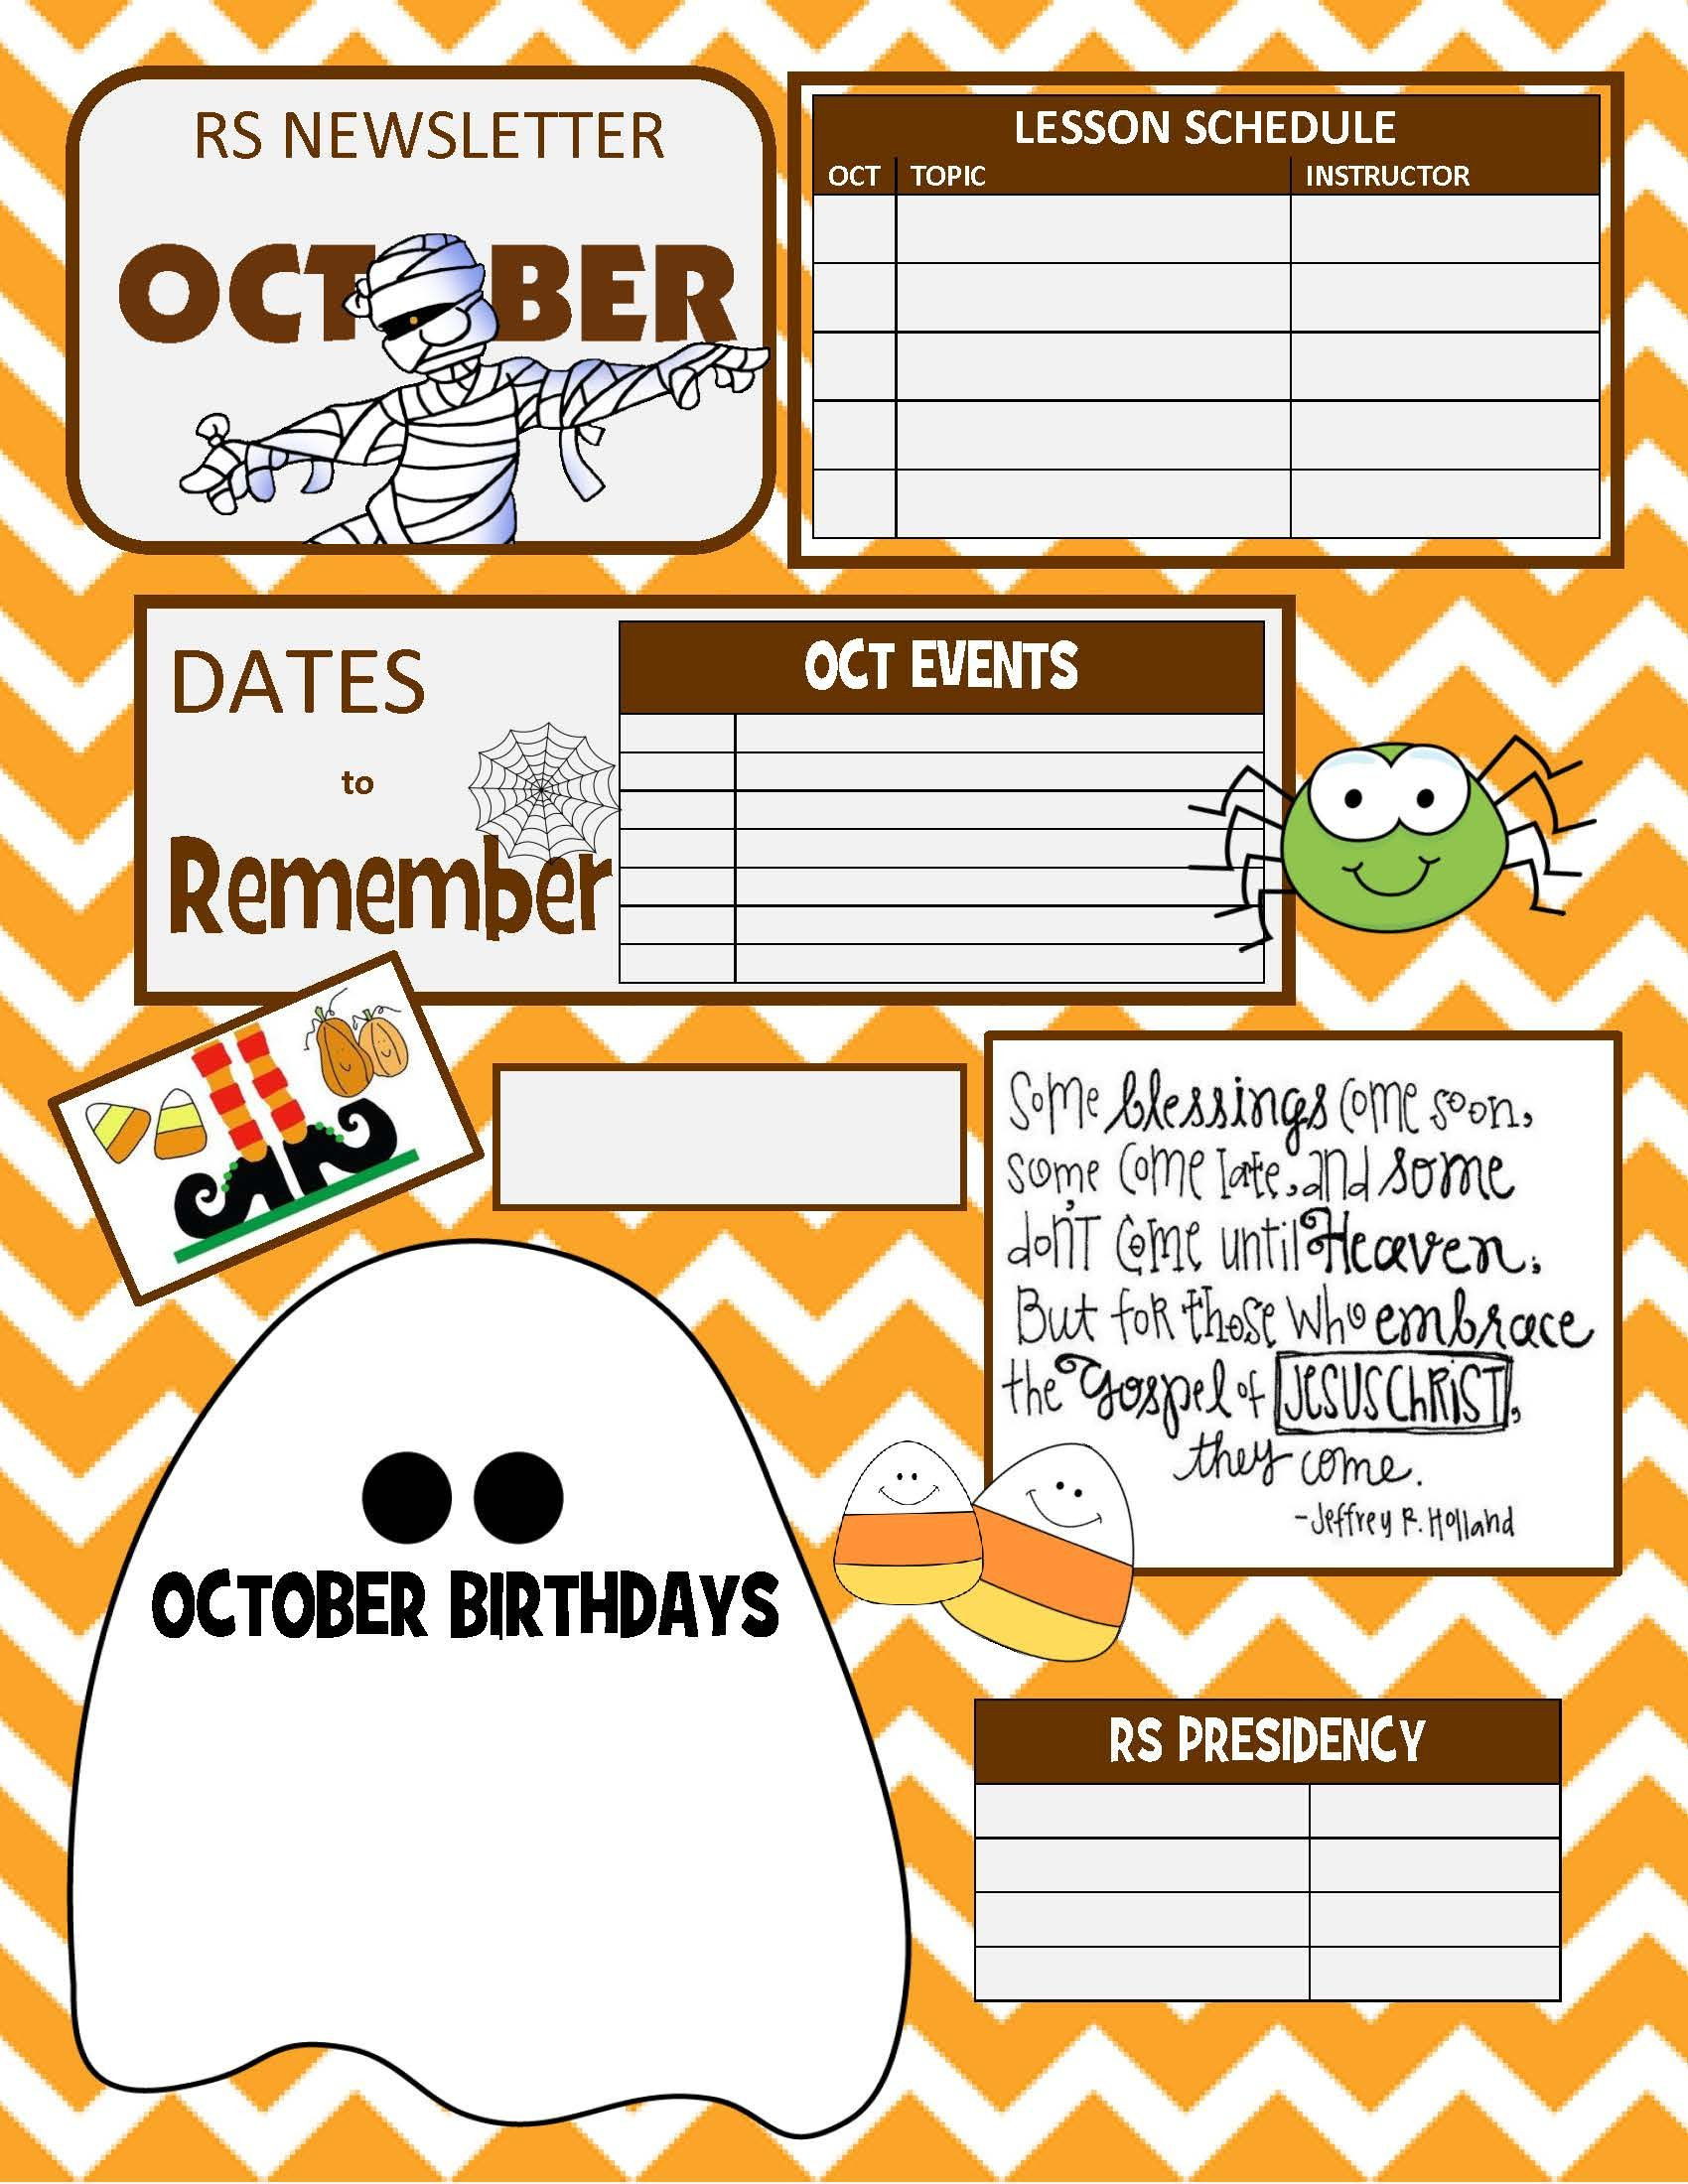 OCTOBER RELIEF SOCIETY NEWSLETTER TEMPLATE